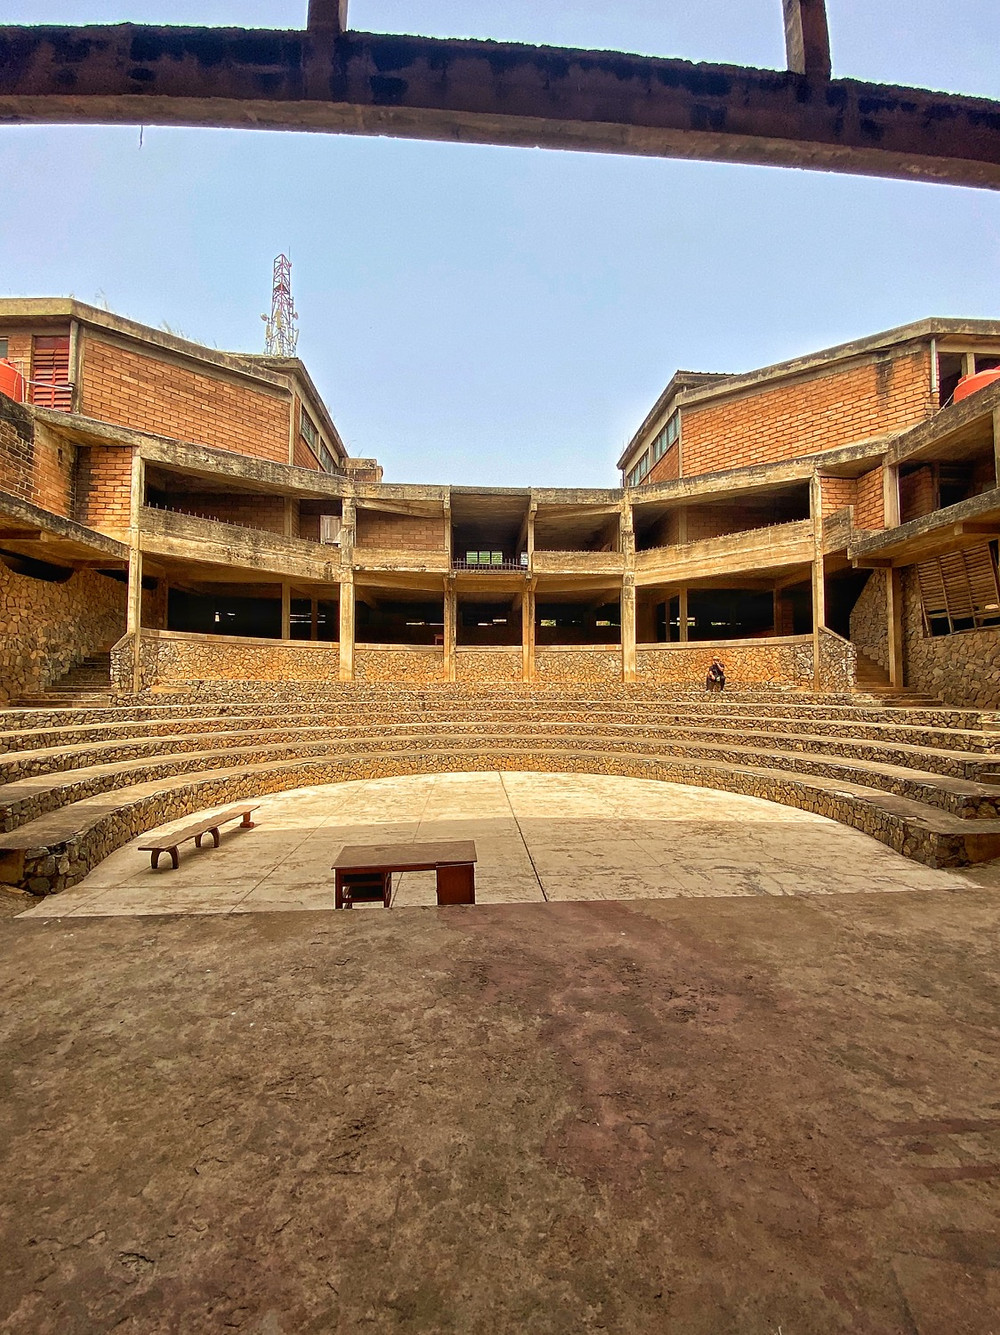 View from the stage of the amphitheater